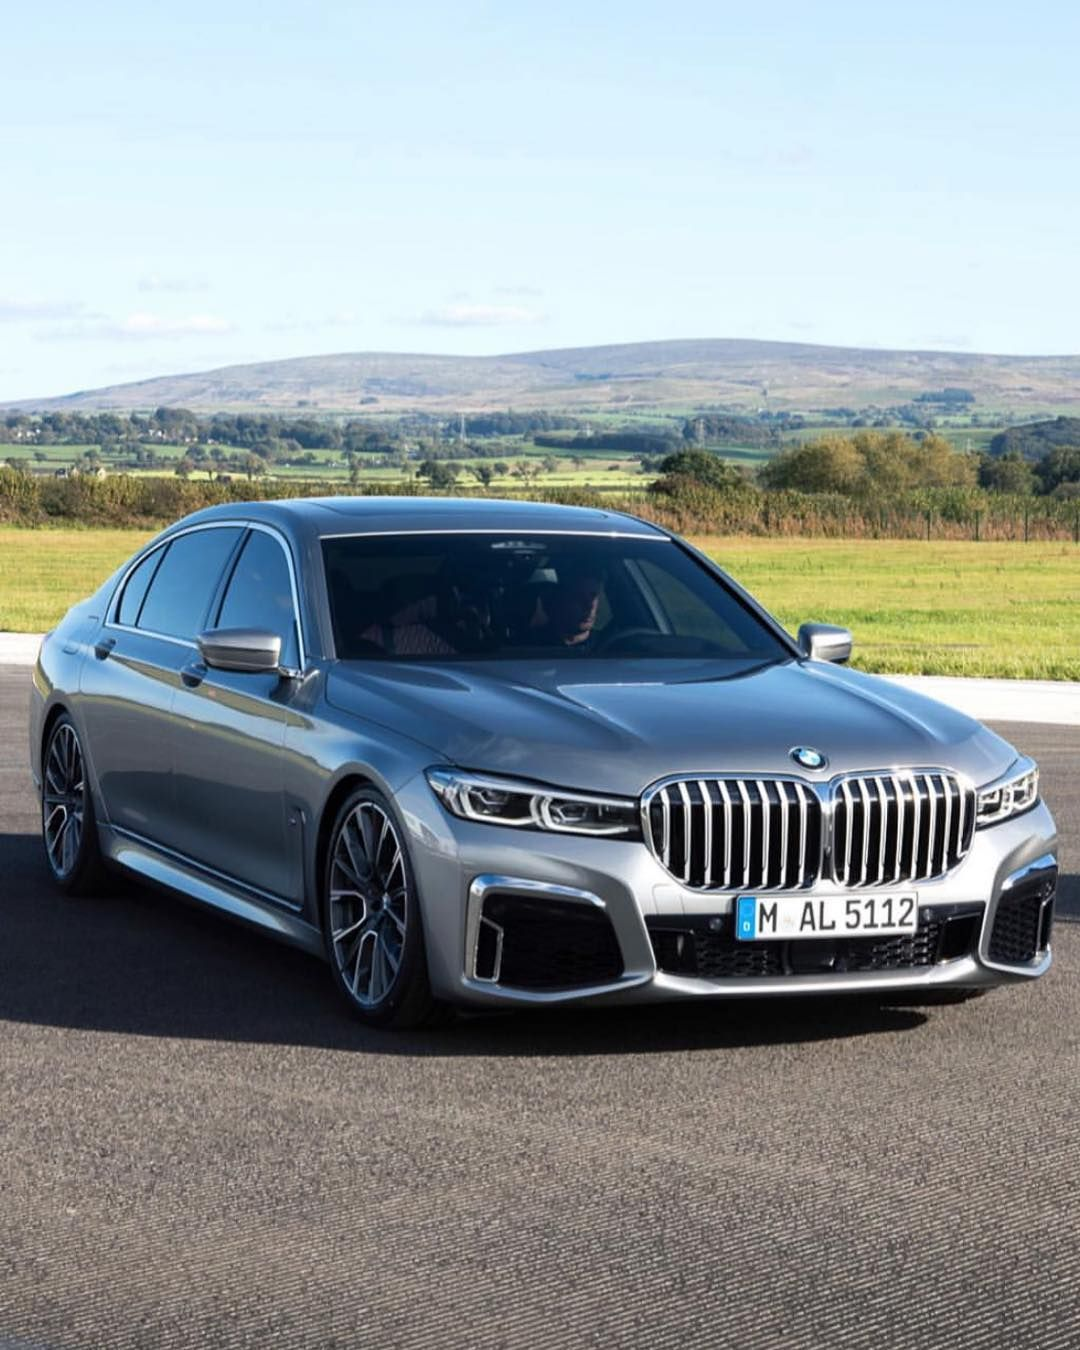 2020 Bmw 7 Series Makes World Premiere In China Which Accounts For 44 Of Sales Bmw 7 Series Bmw Bmw Cars